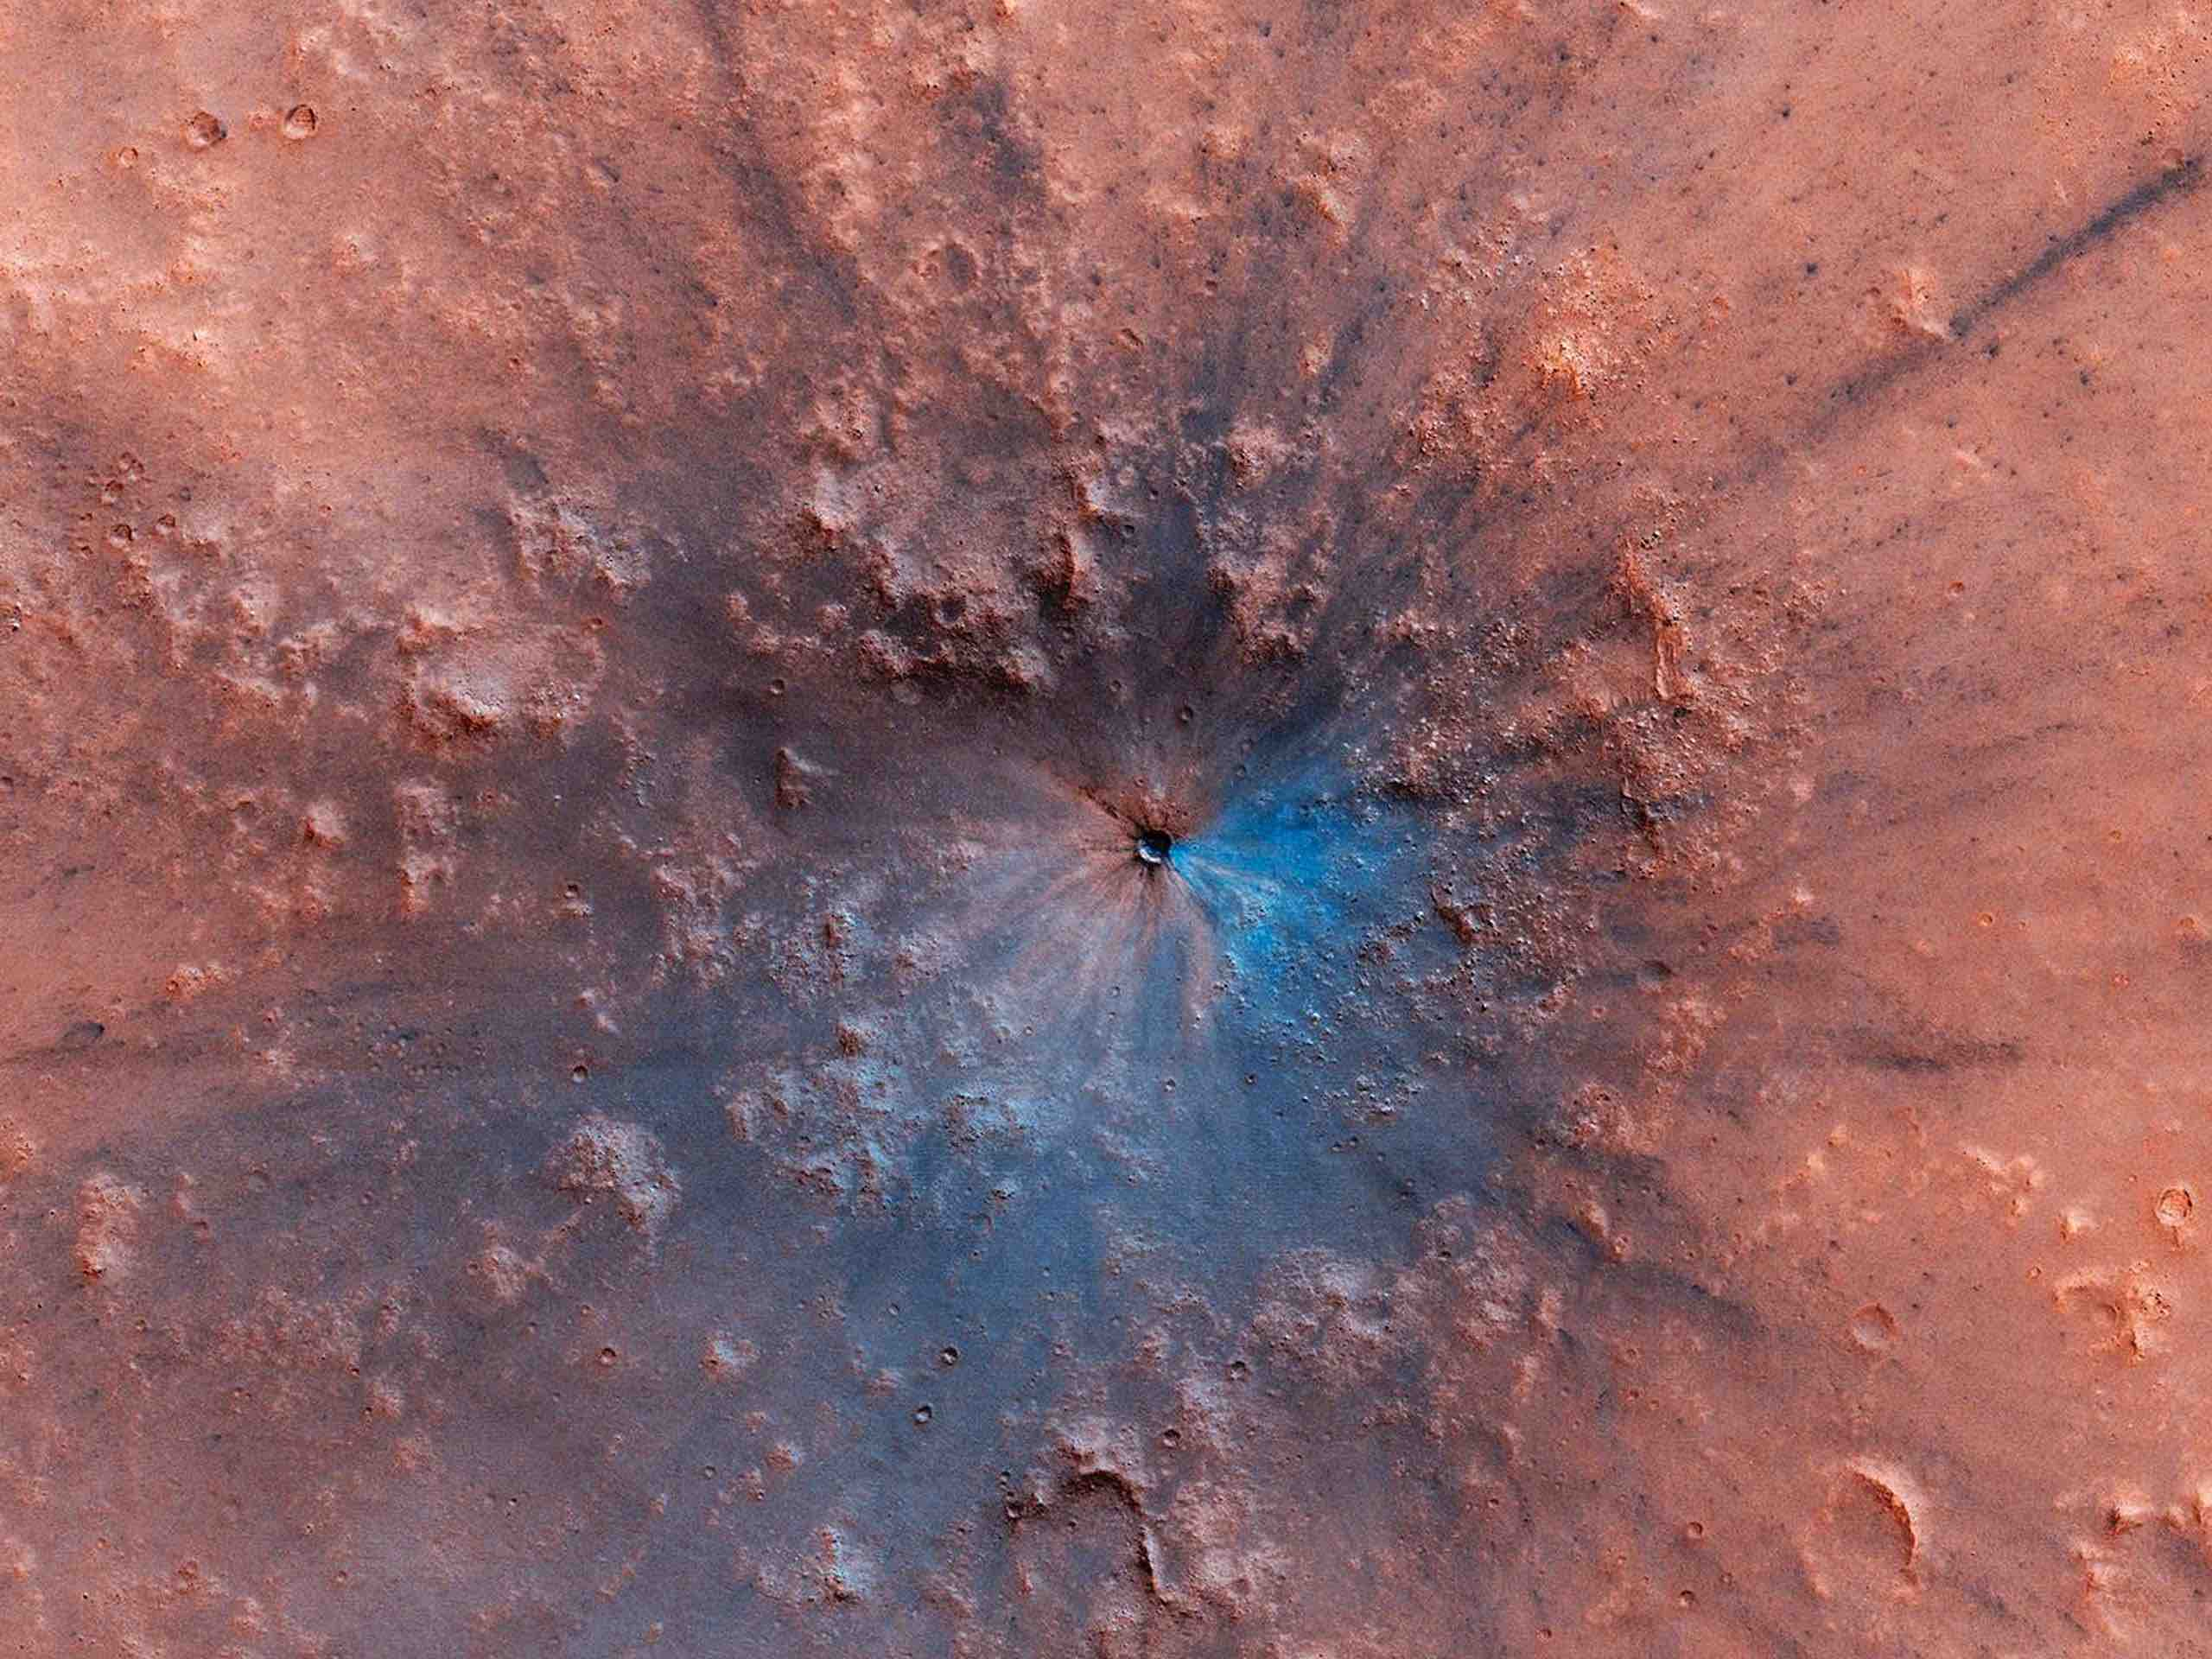 Smmars-impact-crater_small